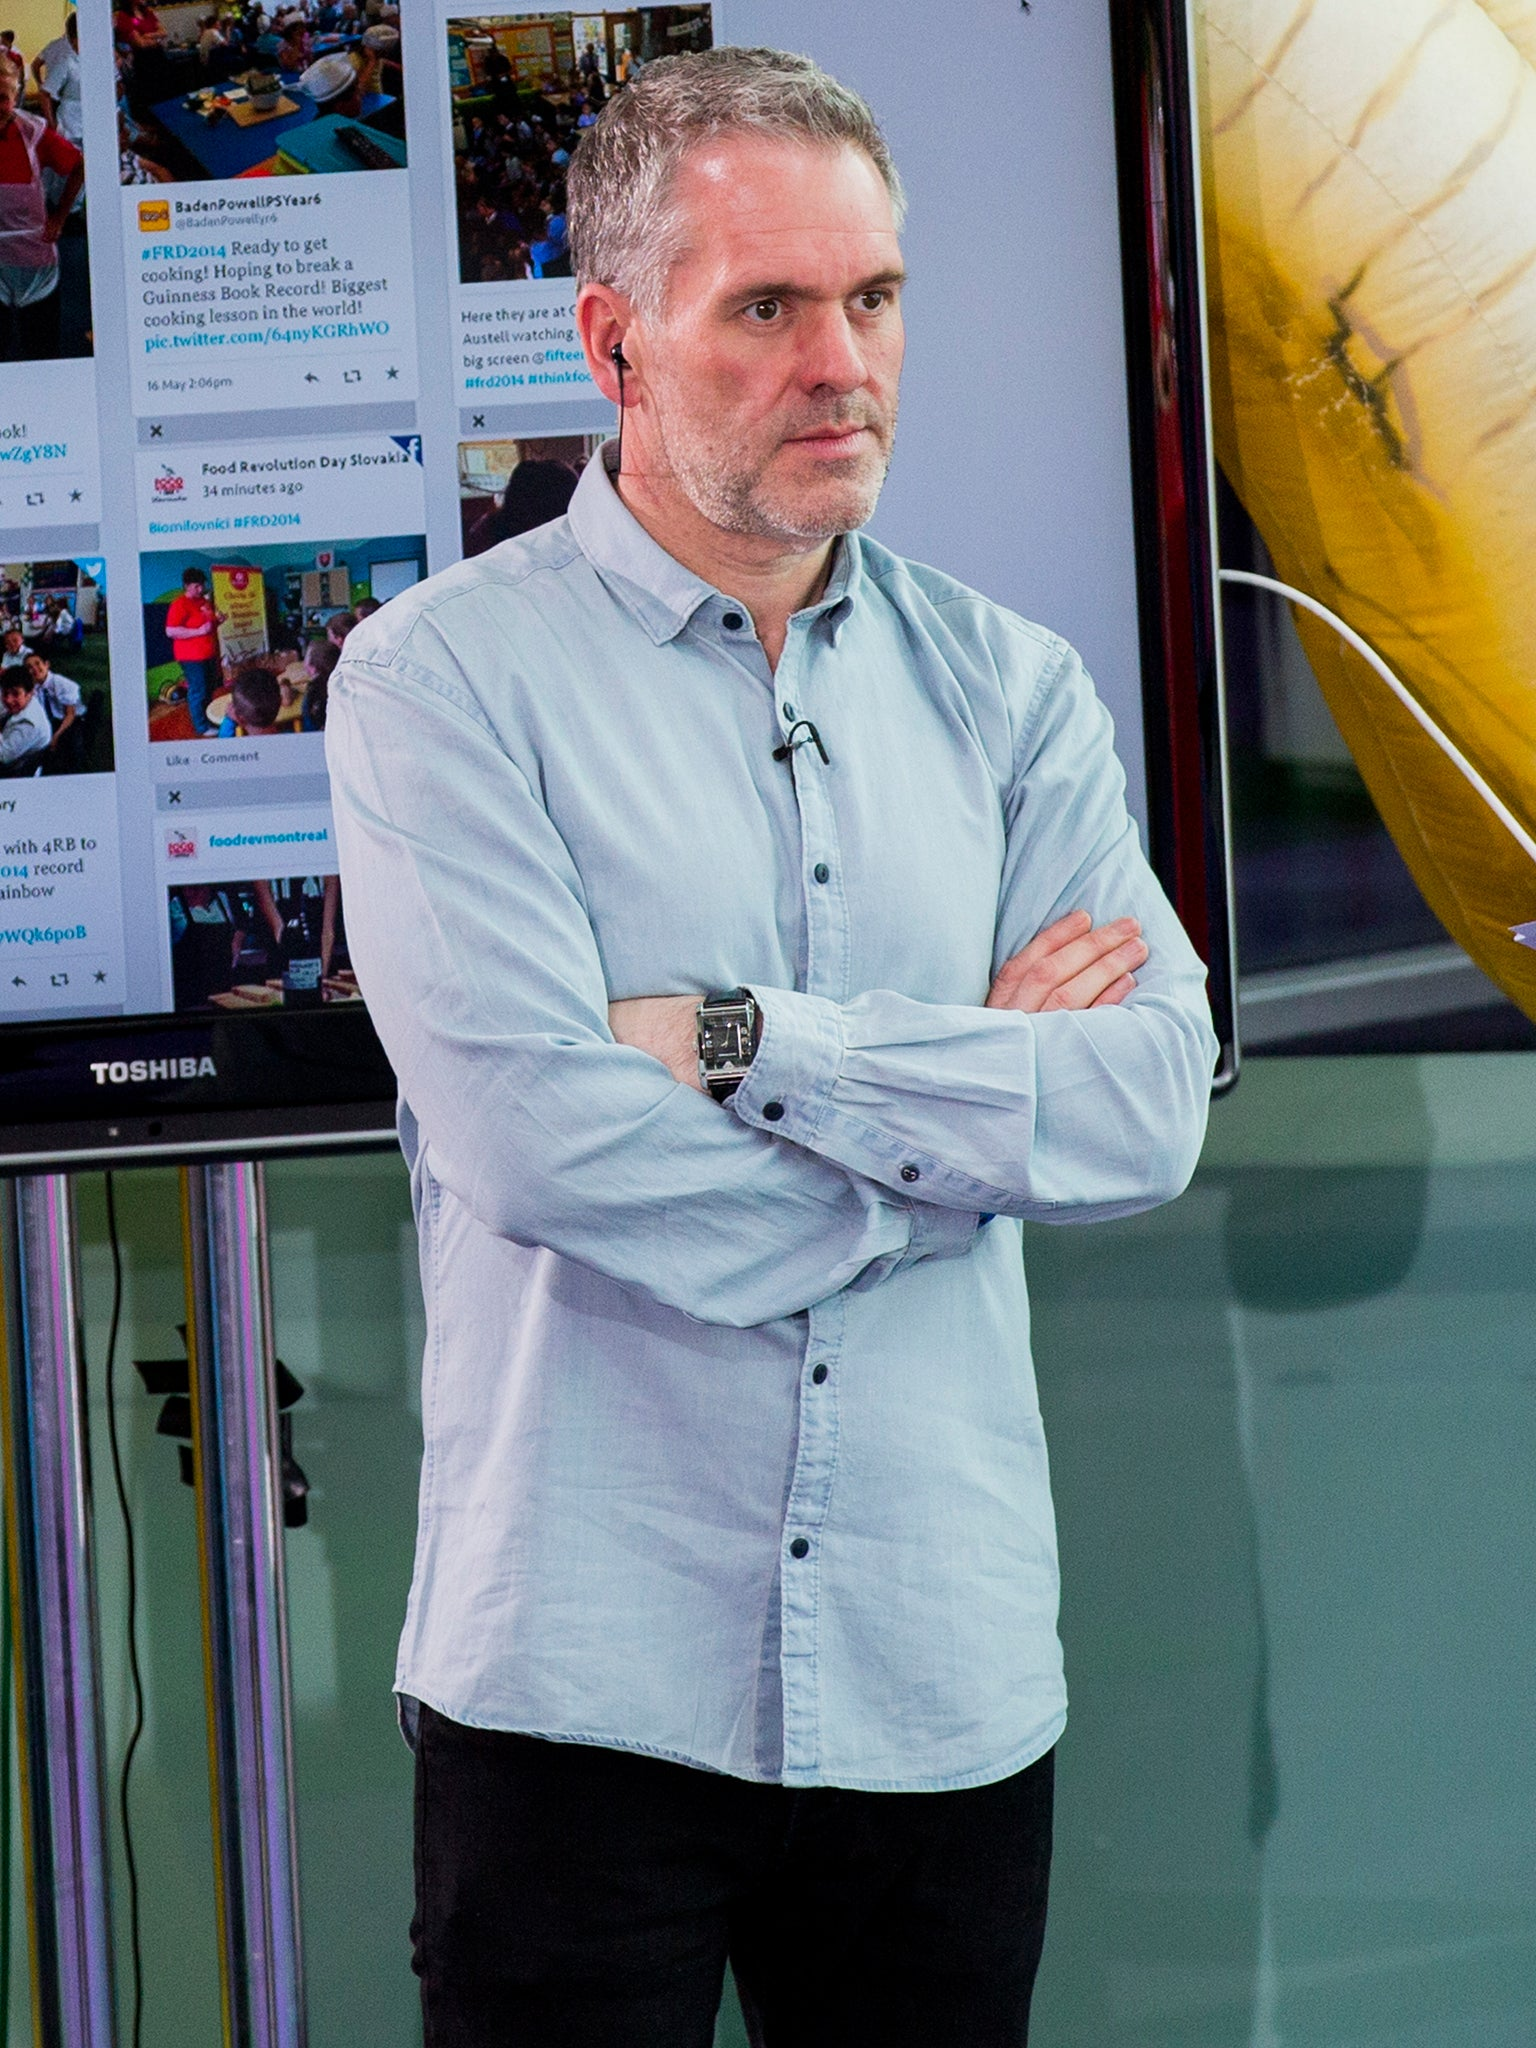 Chris Moyles Claims Radio 1 Controller Sacked Him Before He Could